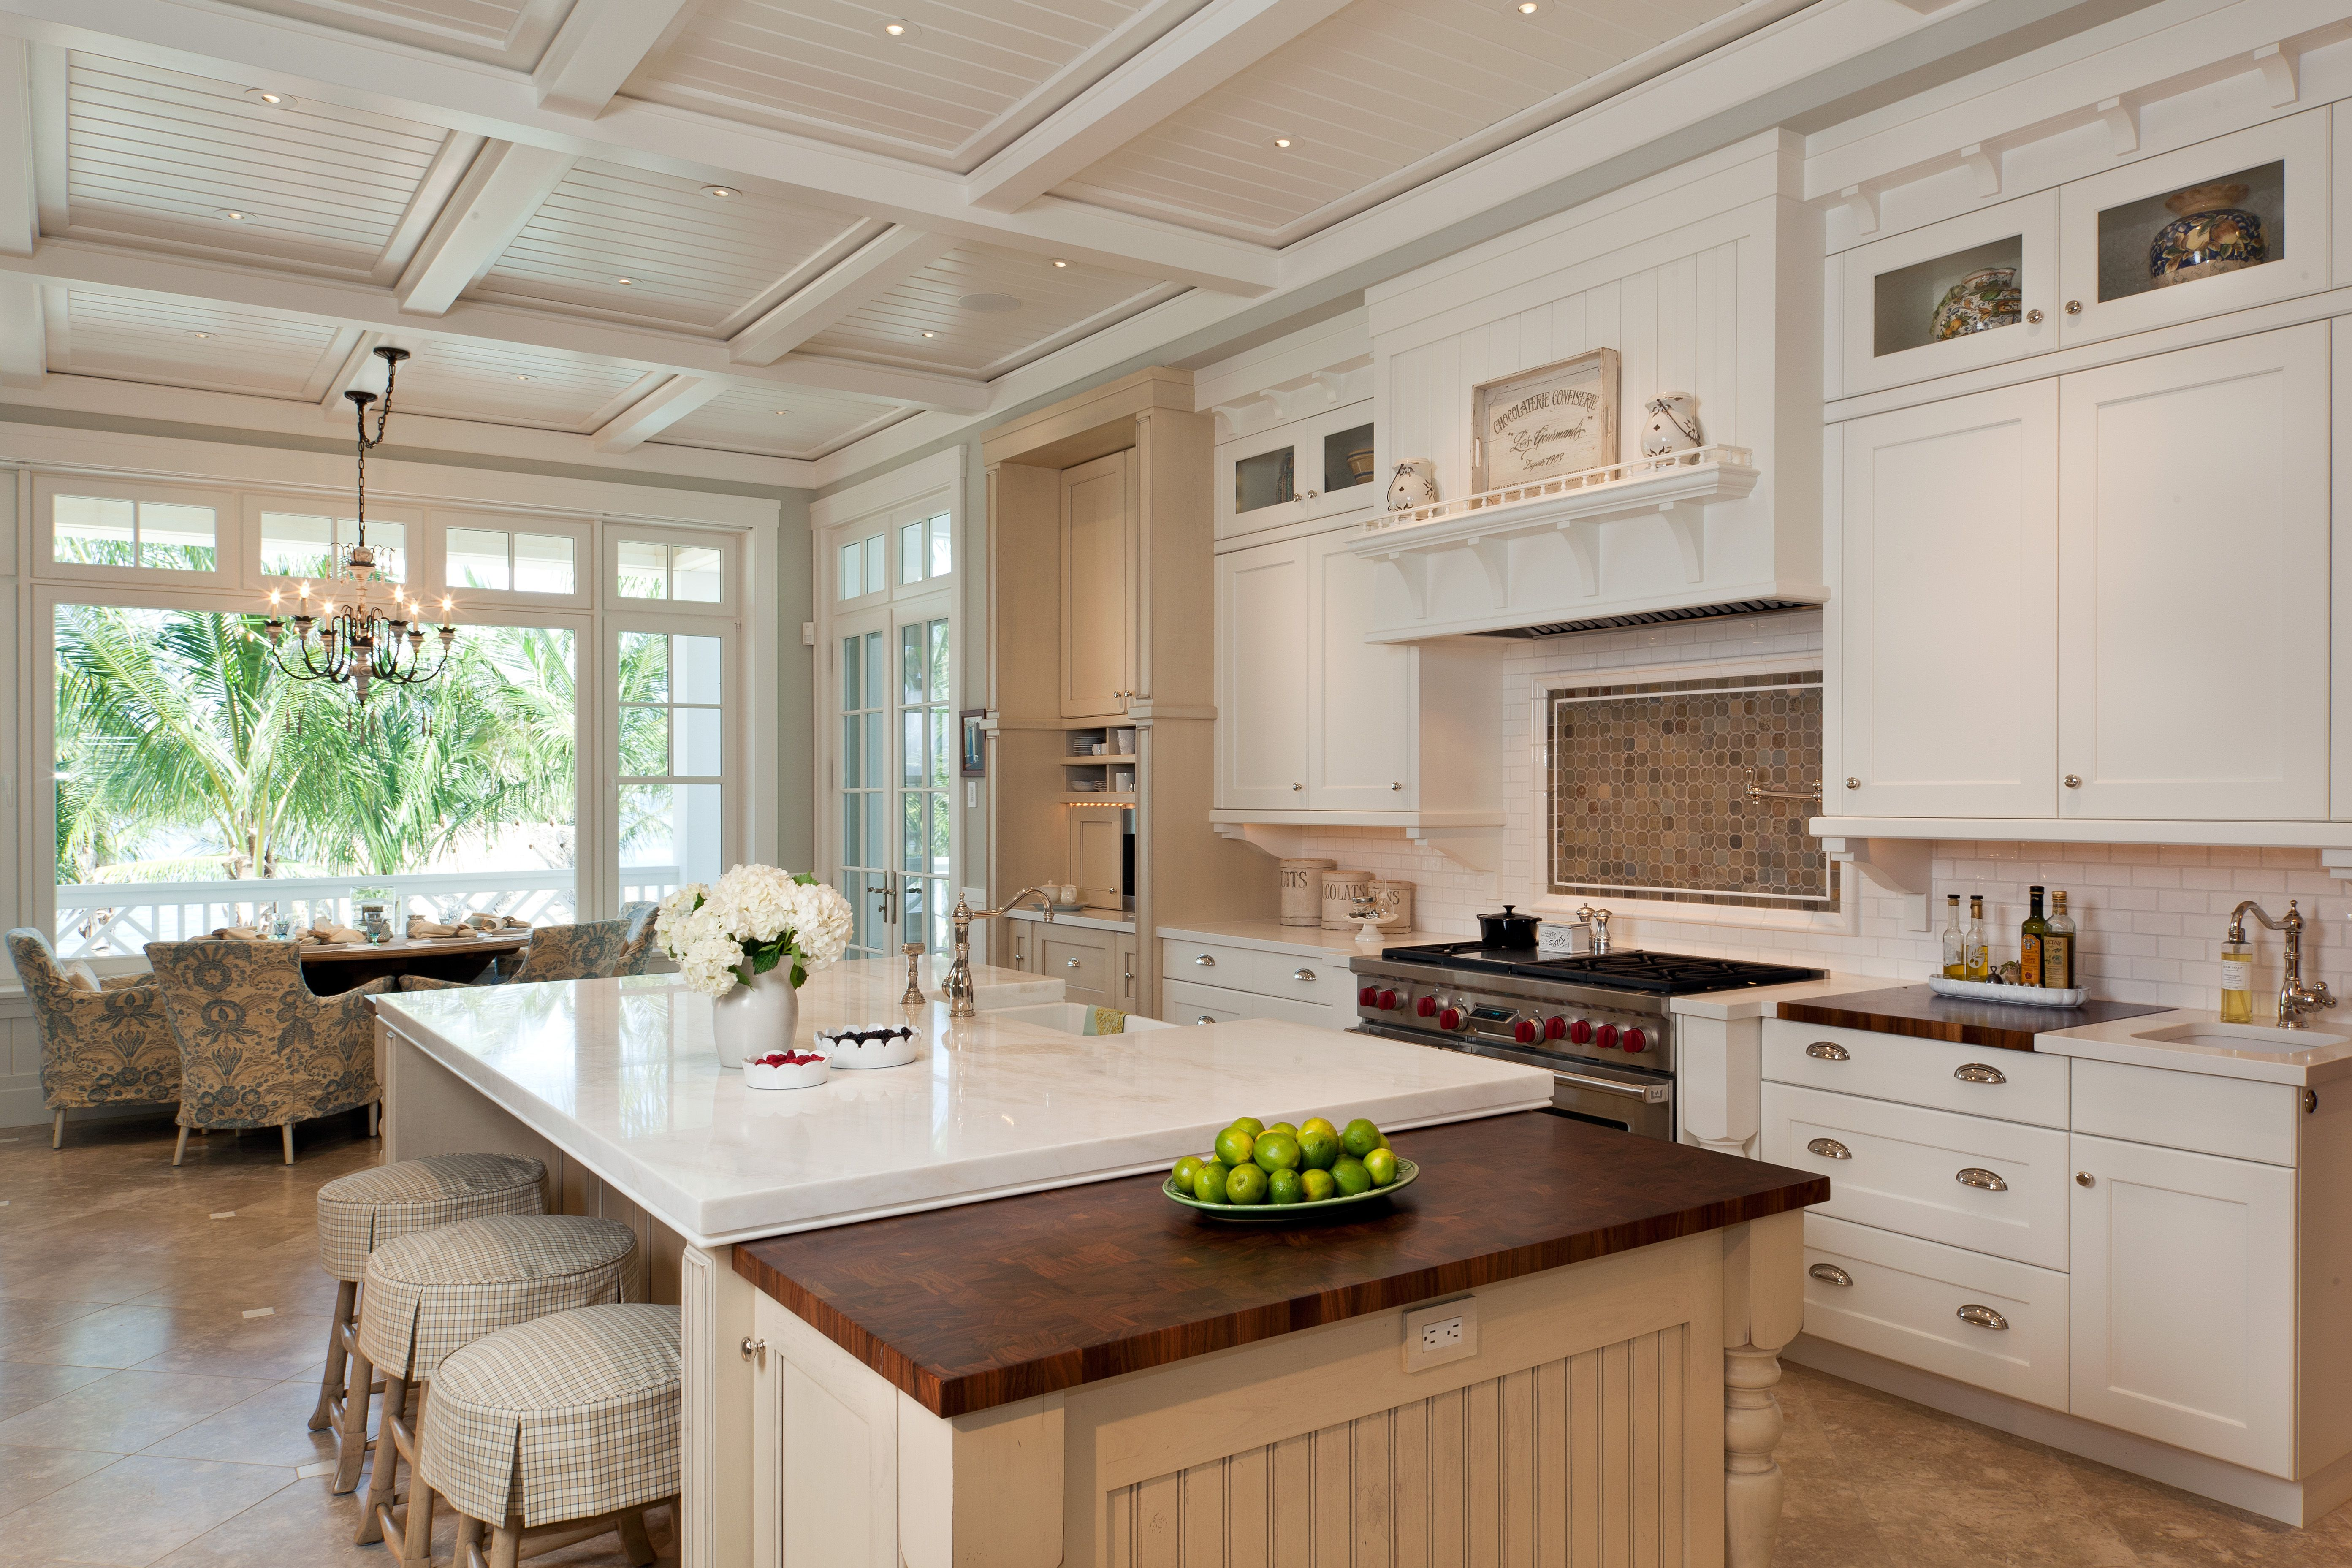 Beadboard Details And The Trim On The Ceiling Are Echoed In The Kitchen Cabinets And Wall M Kitchen Inspiration Design Kitchen Inspirations Traditional Kitchen